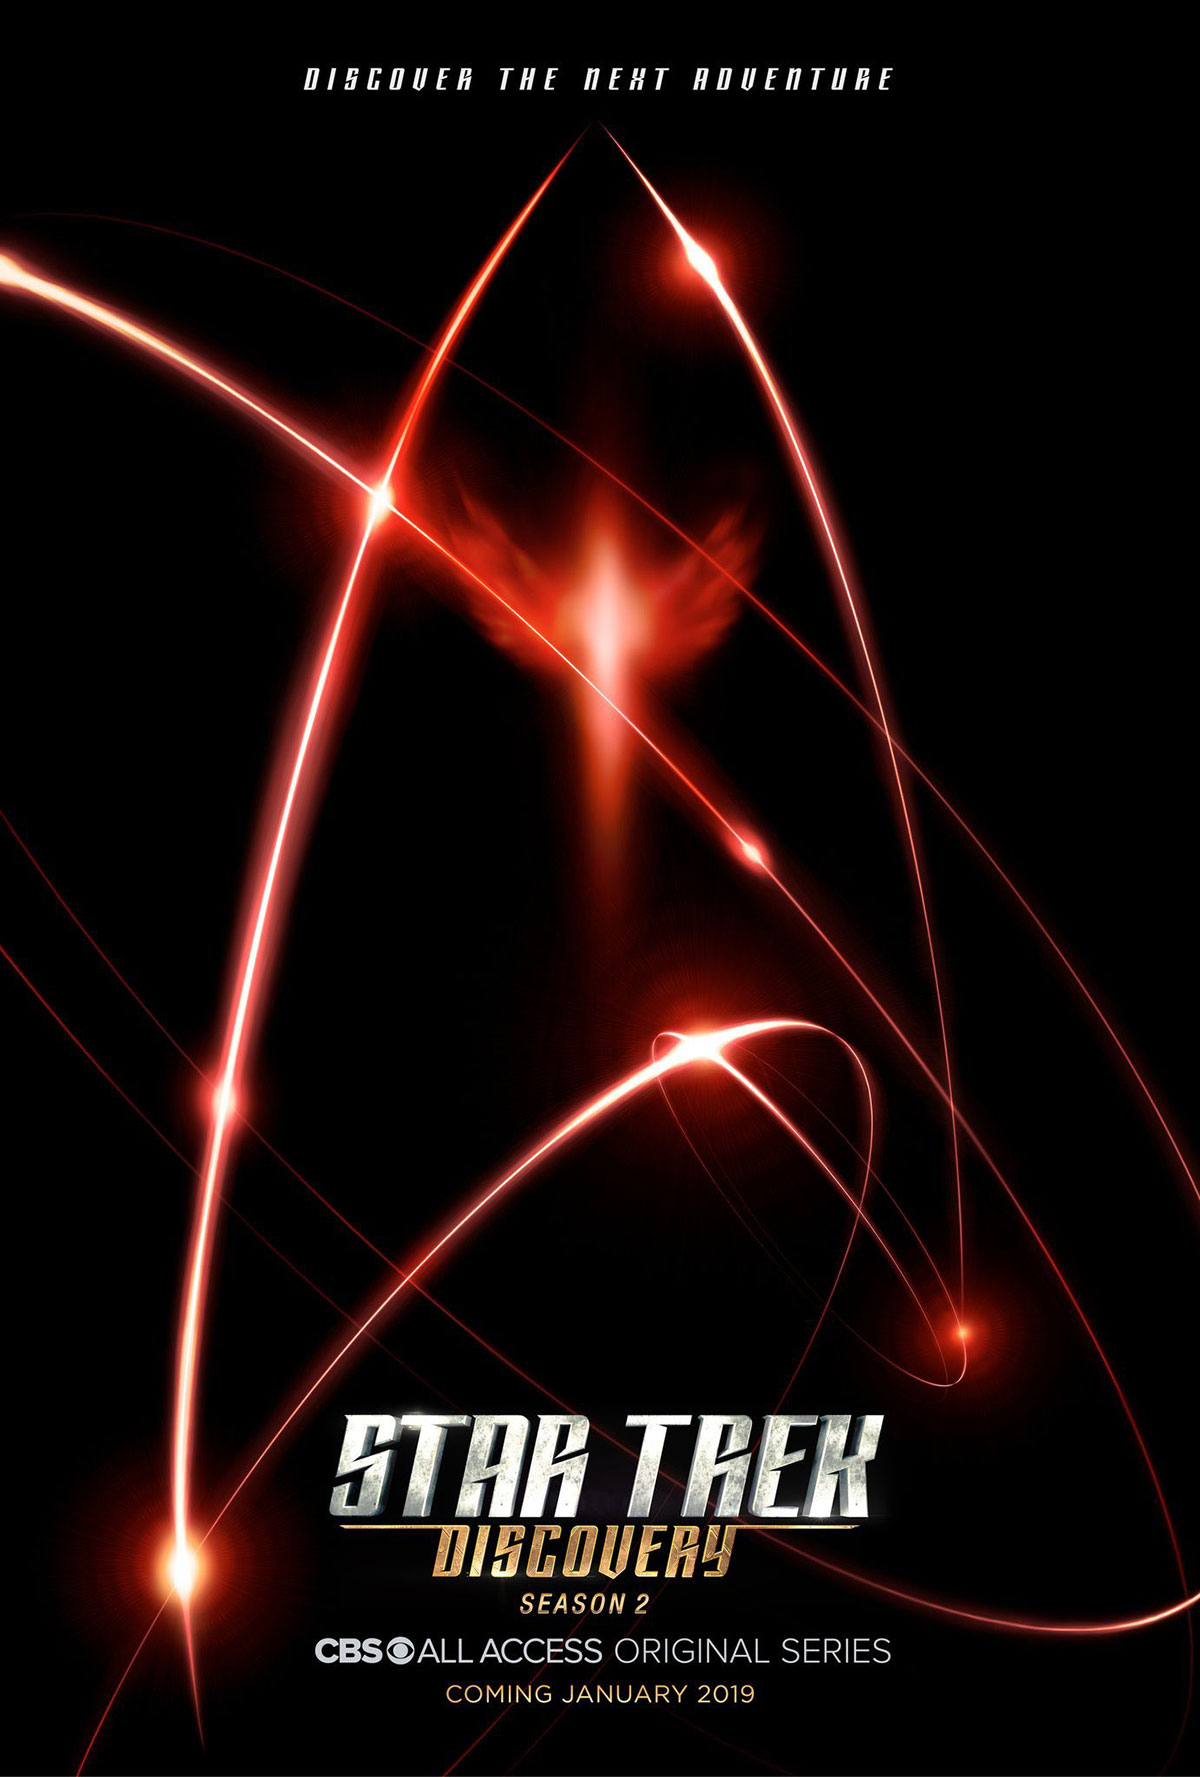 Star Trek: Discovery - Season 2 Poster